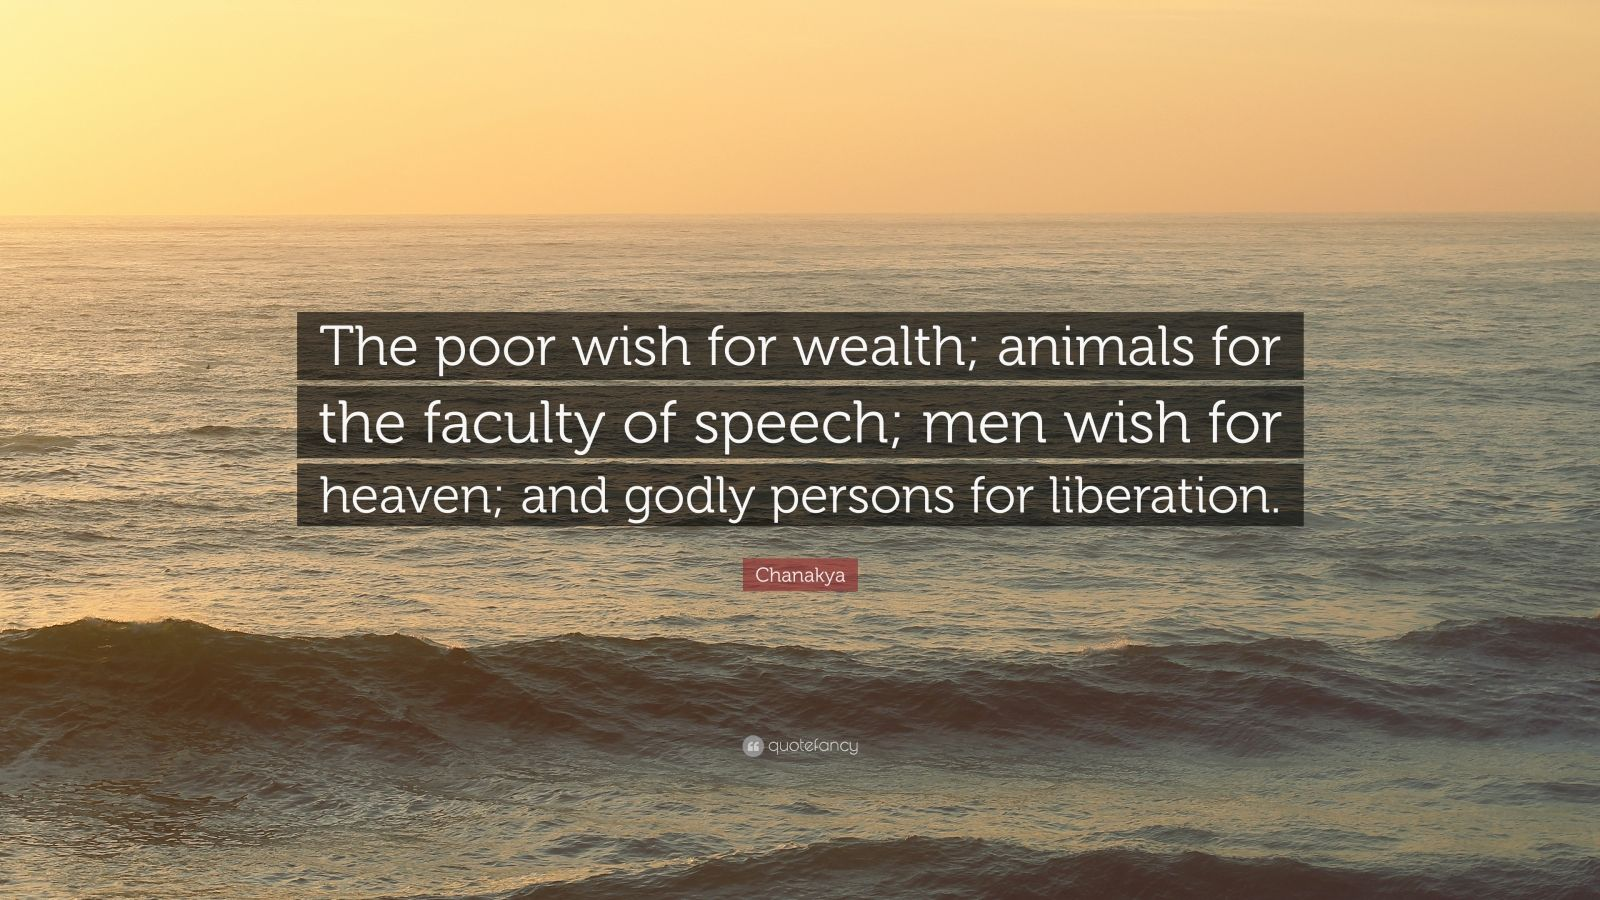 """Chanakya Quote: """"The poor wish for wealth; animals for the faculty of speech; men wish for heaven; and godly persons for liberation."""""""